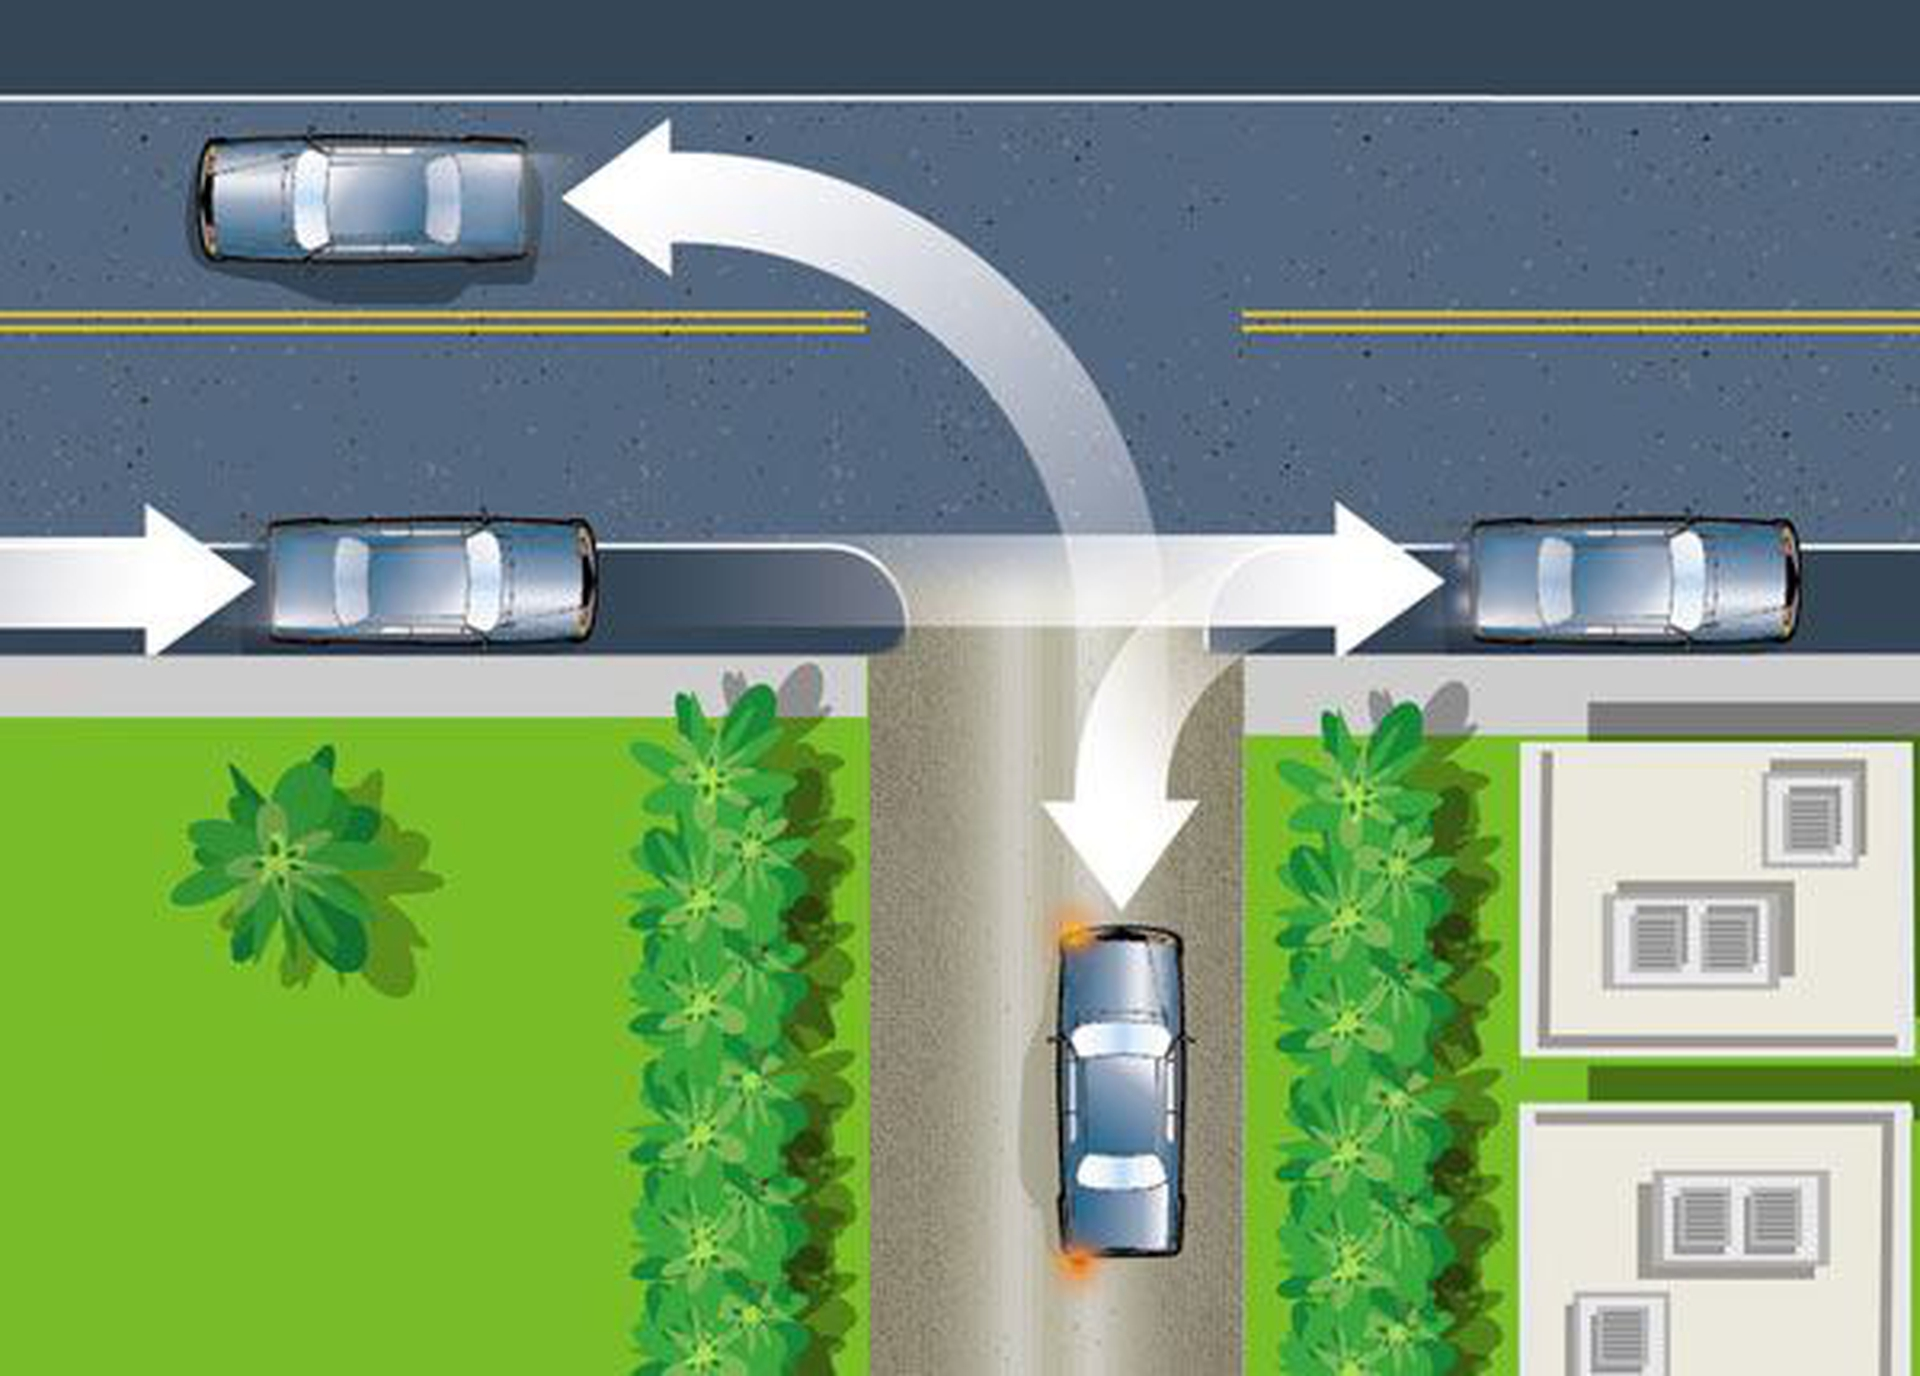 Making a Two-Point Turn